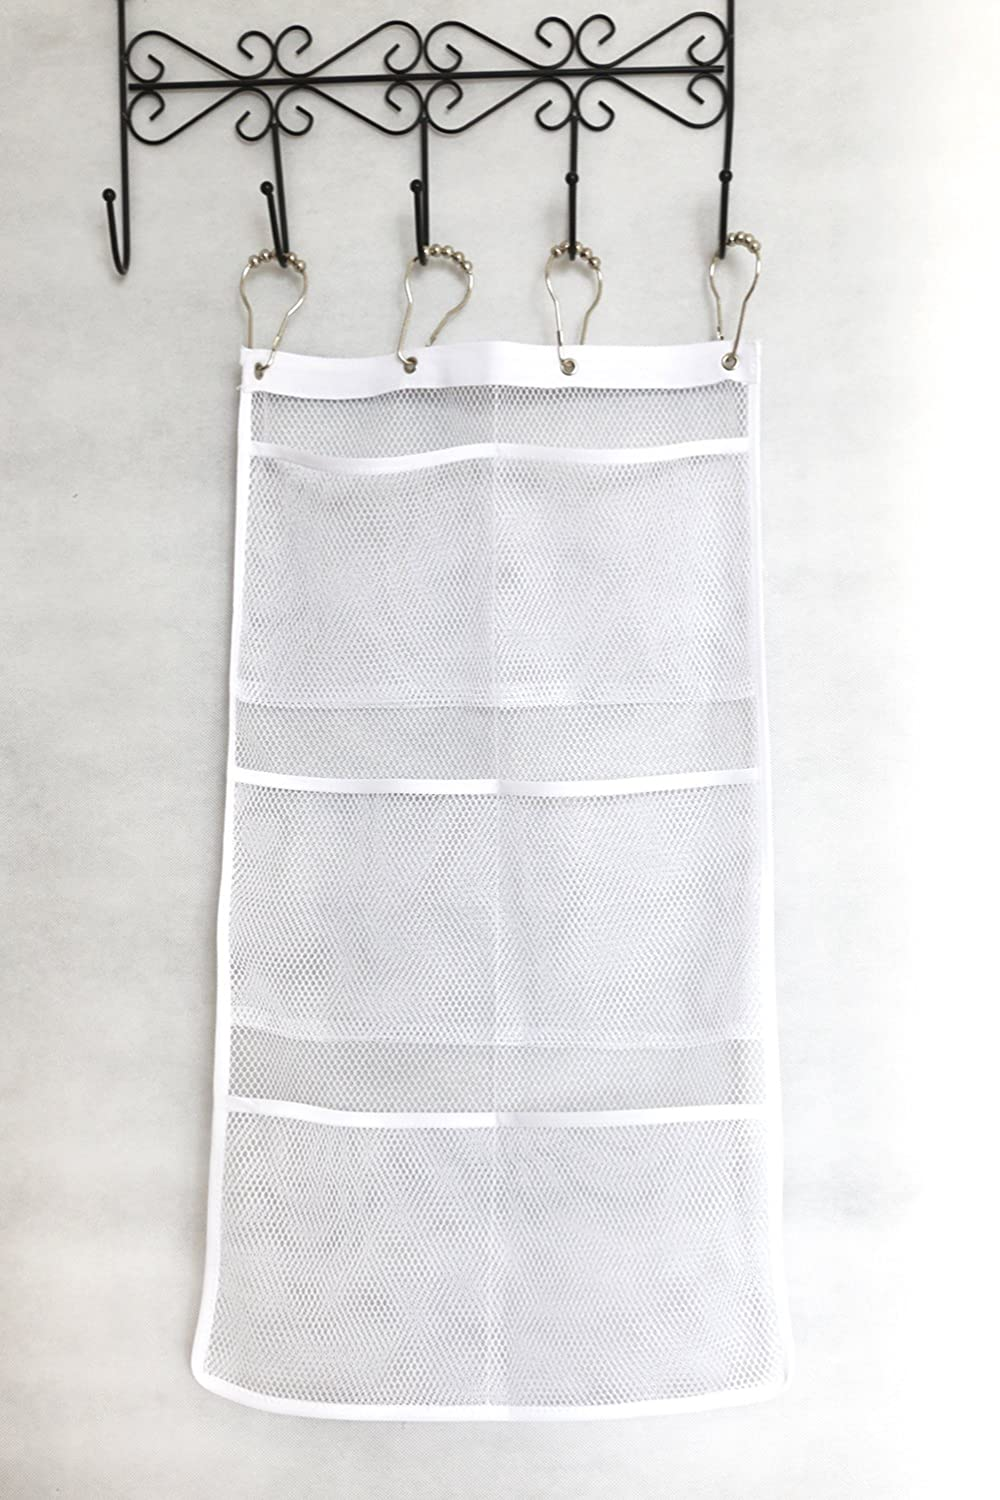 Amazon.com: Quick Dry Hanging Caddy and Bath Organizer with 6 ...